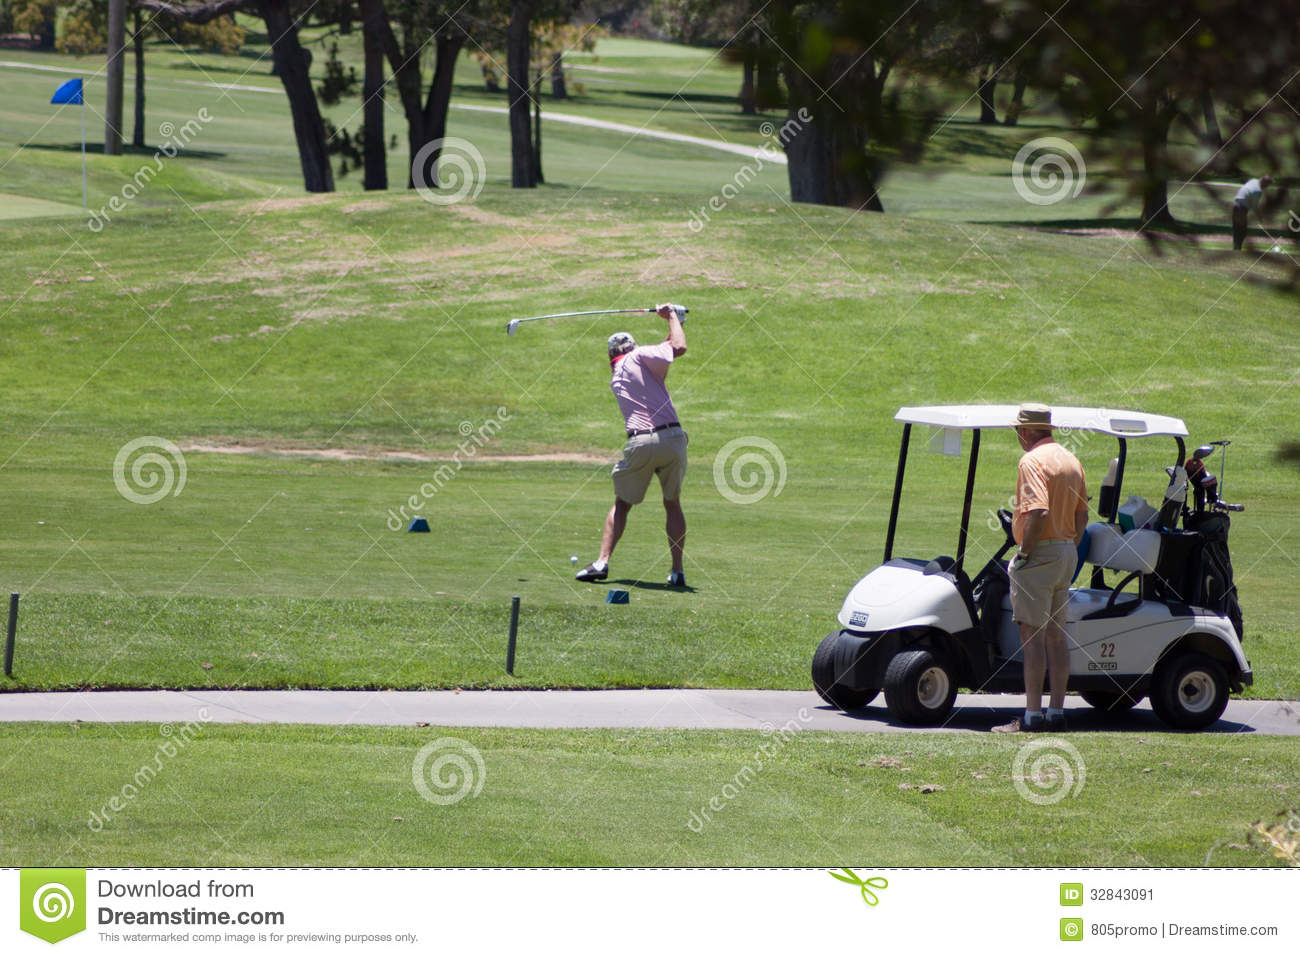 Teeing Off On The Golf Course Editorial Photo - Image of sport ... on golf buggy, golf hitting nets, golf cartoons, golf handicap, golf trolley, golf games, golf machine, golf accessories, golf tools, golf card, golf girls, golf players, golf words,